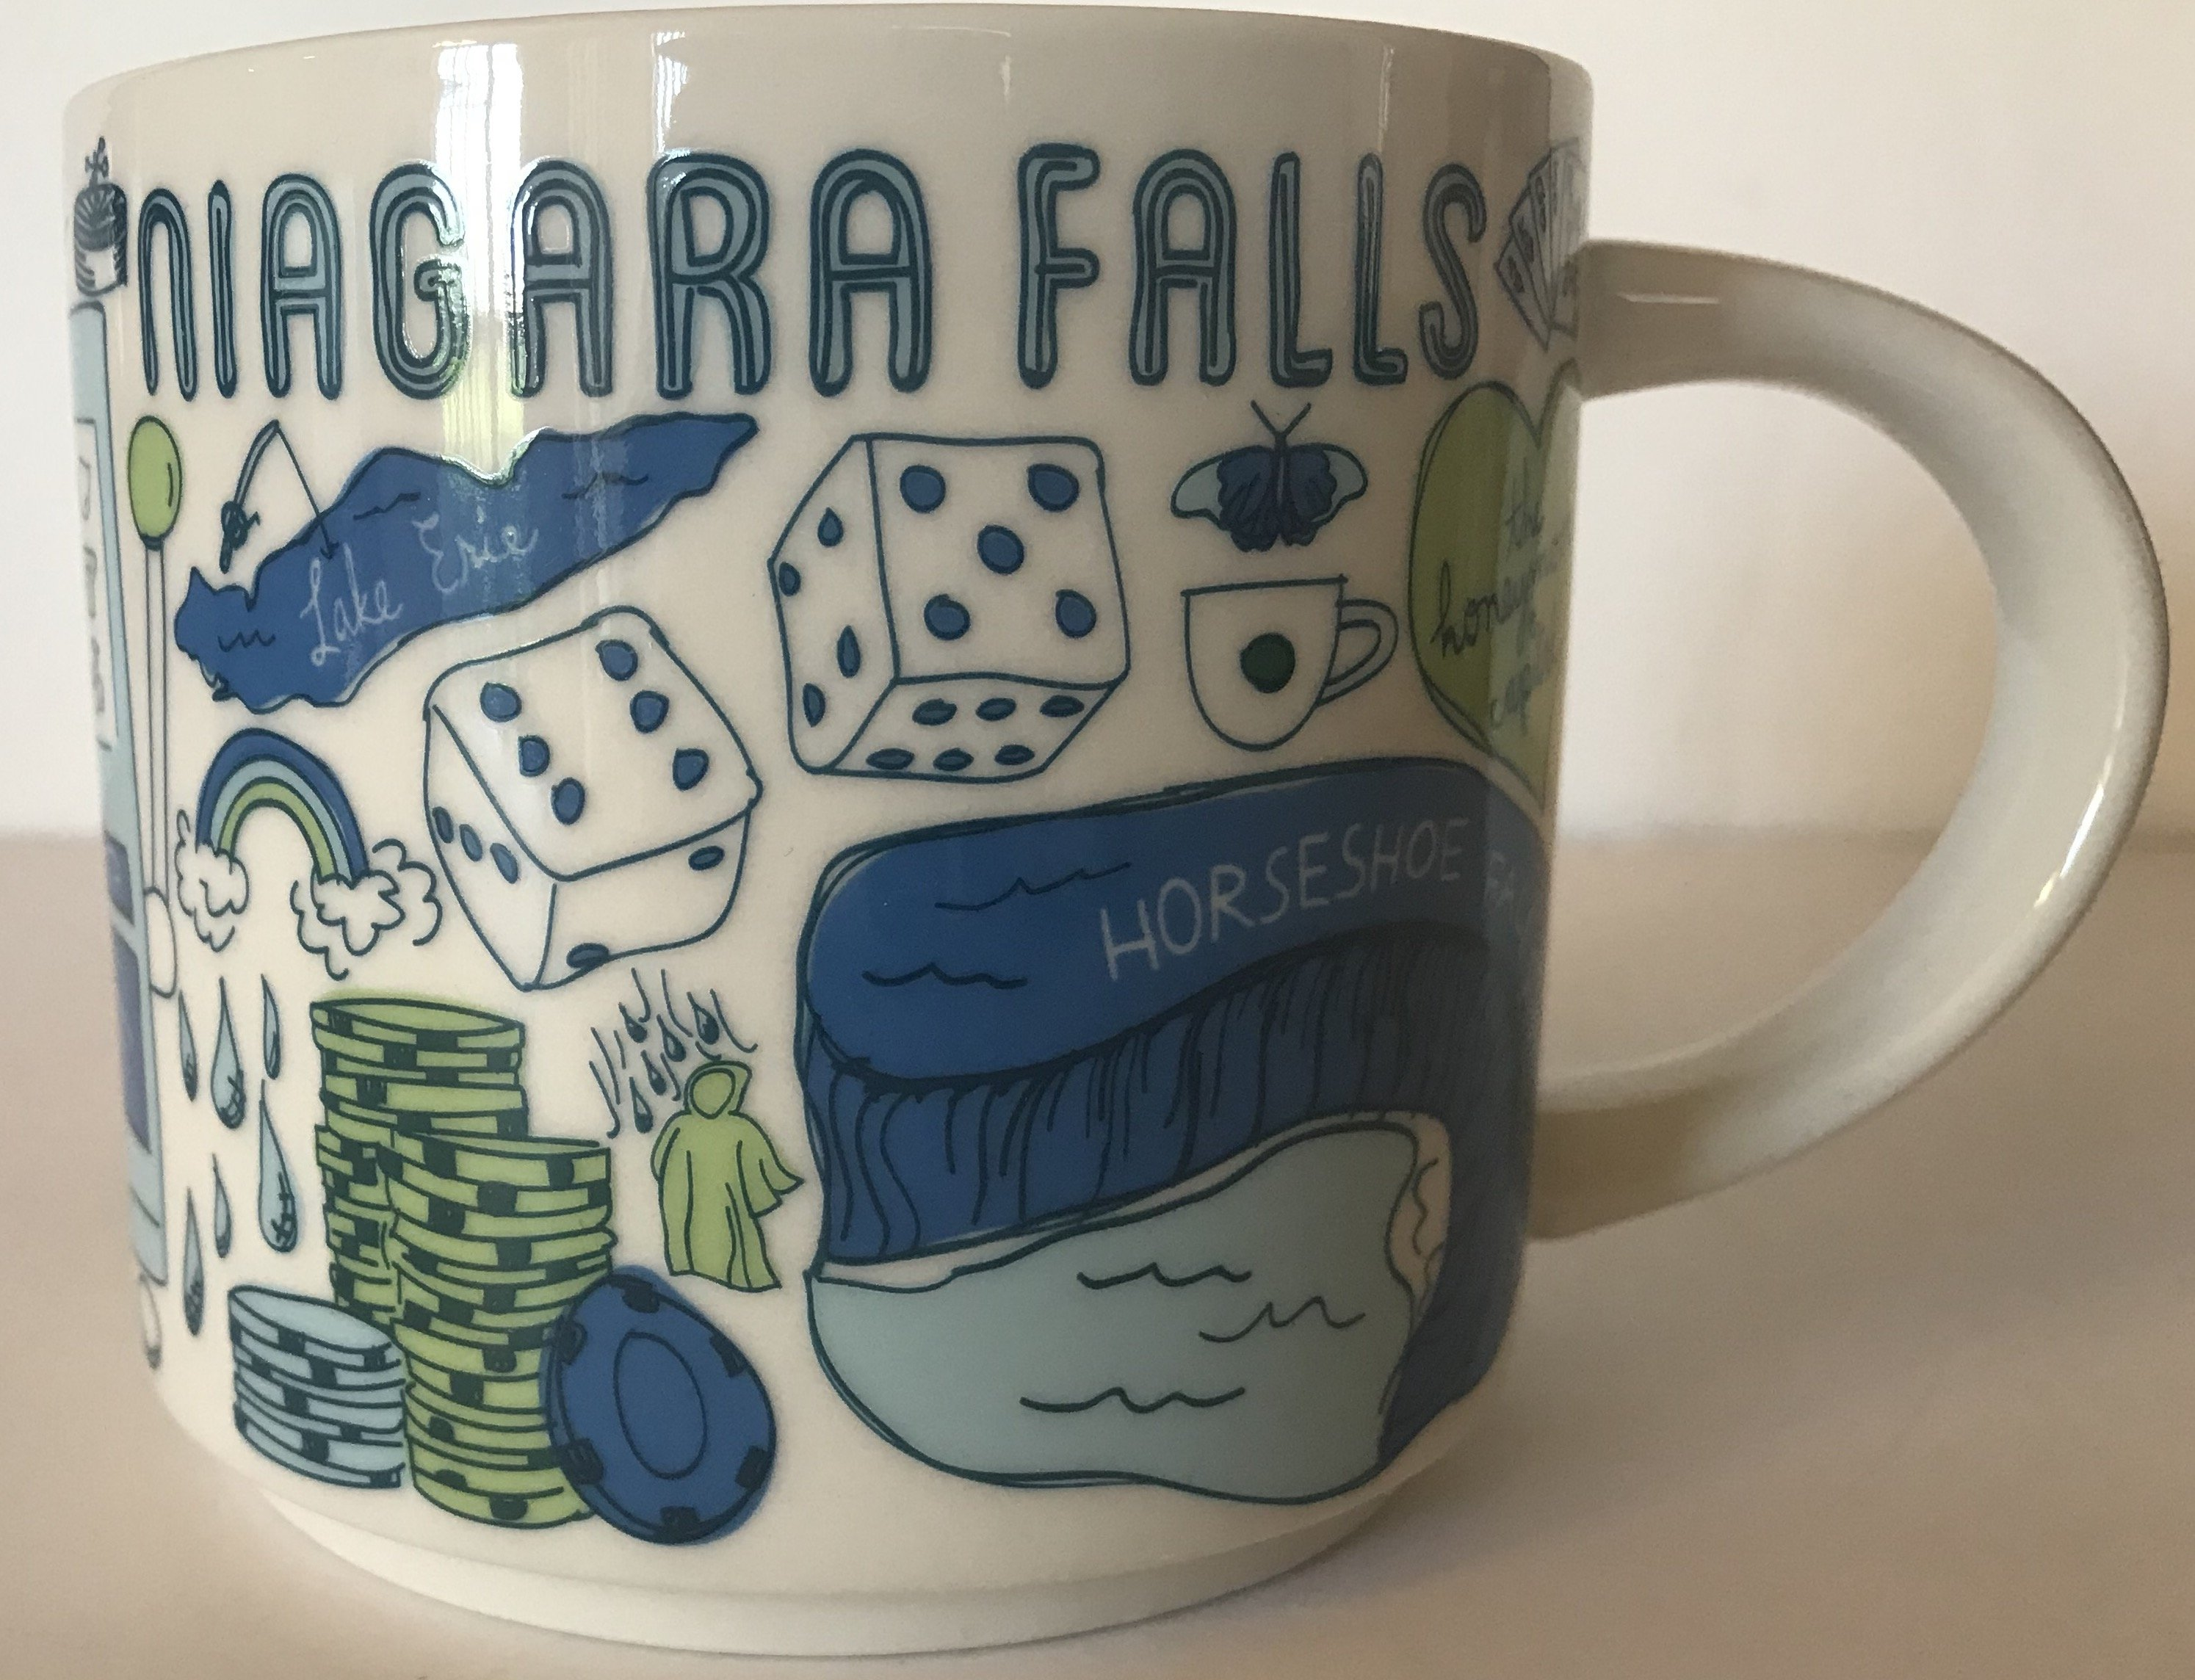 Coffee Niagara Been There Mug Starbucks New With Series Collection Box Falls N8OPX0wZnk